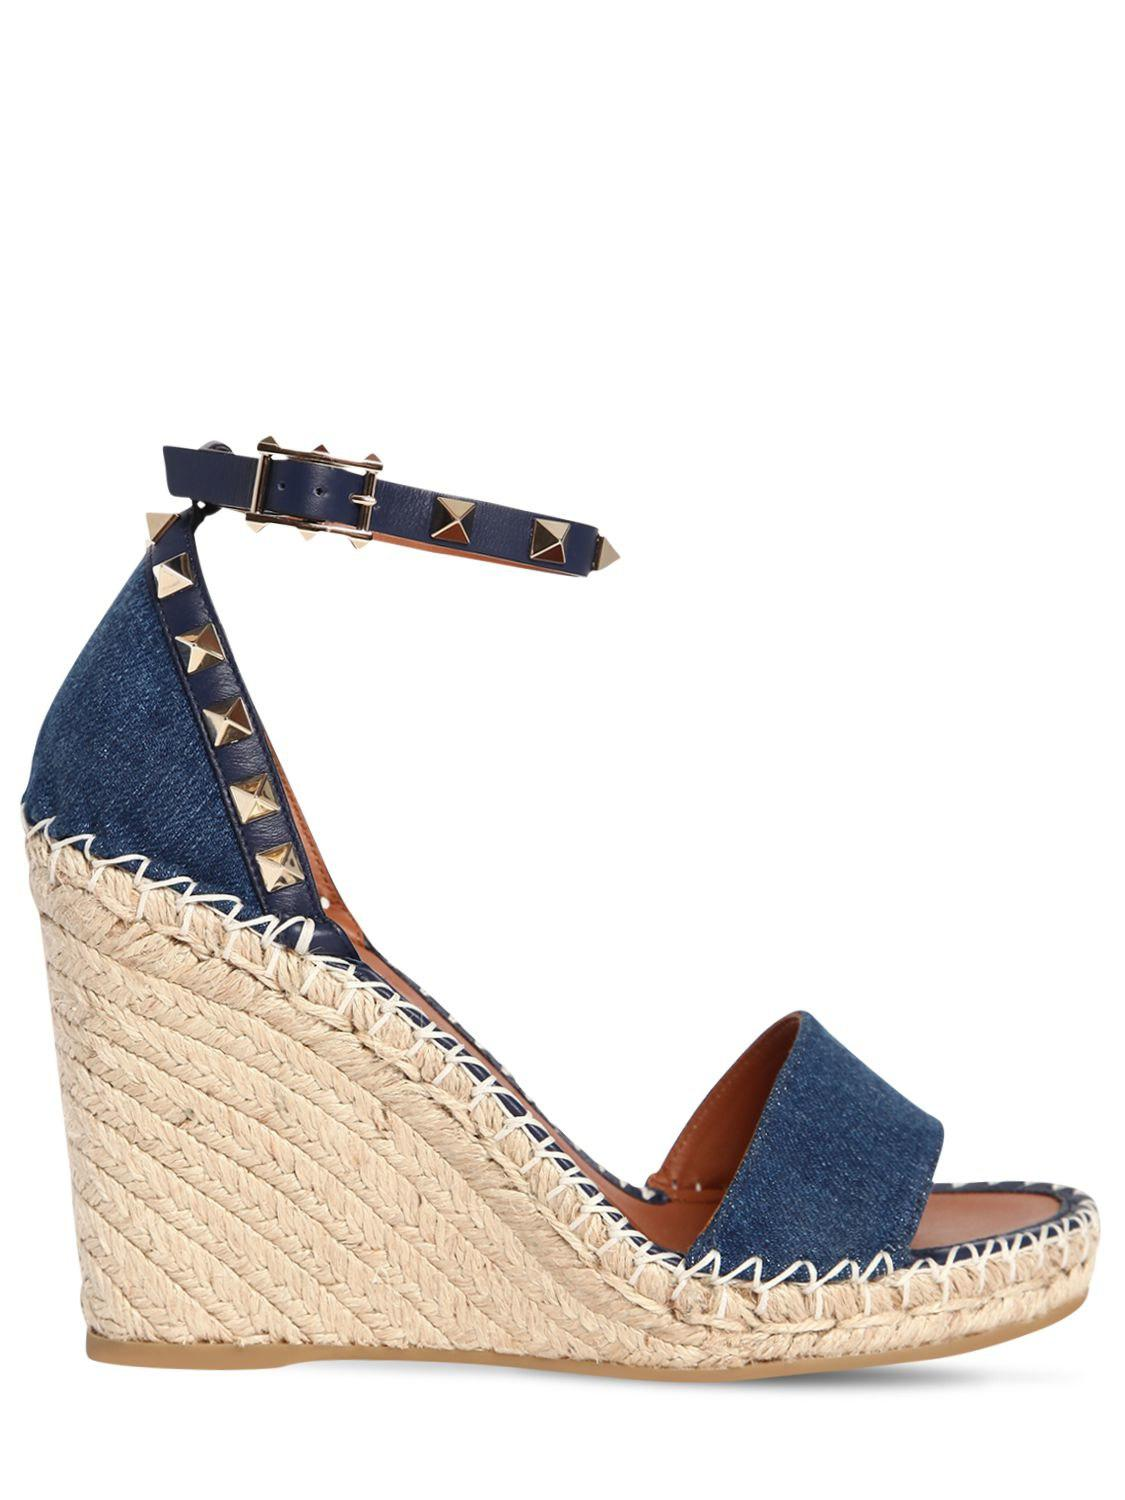 4ccbee5d32e Valentino 105mm Rockstud Double Denim Wedges in Blue - Lyst